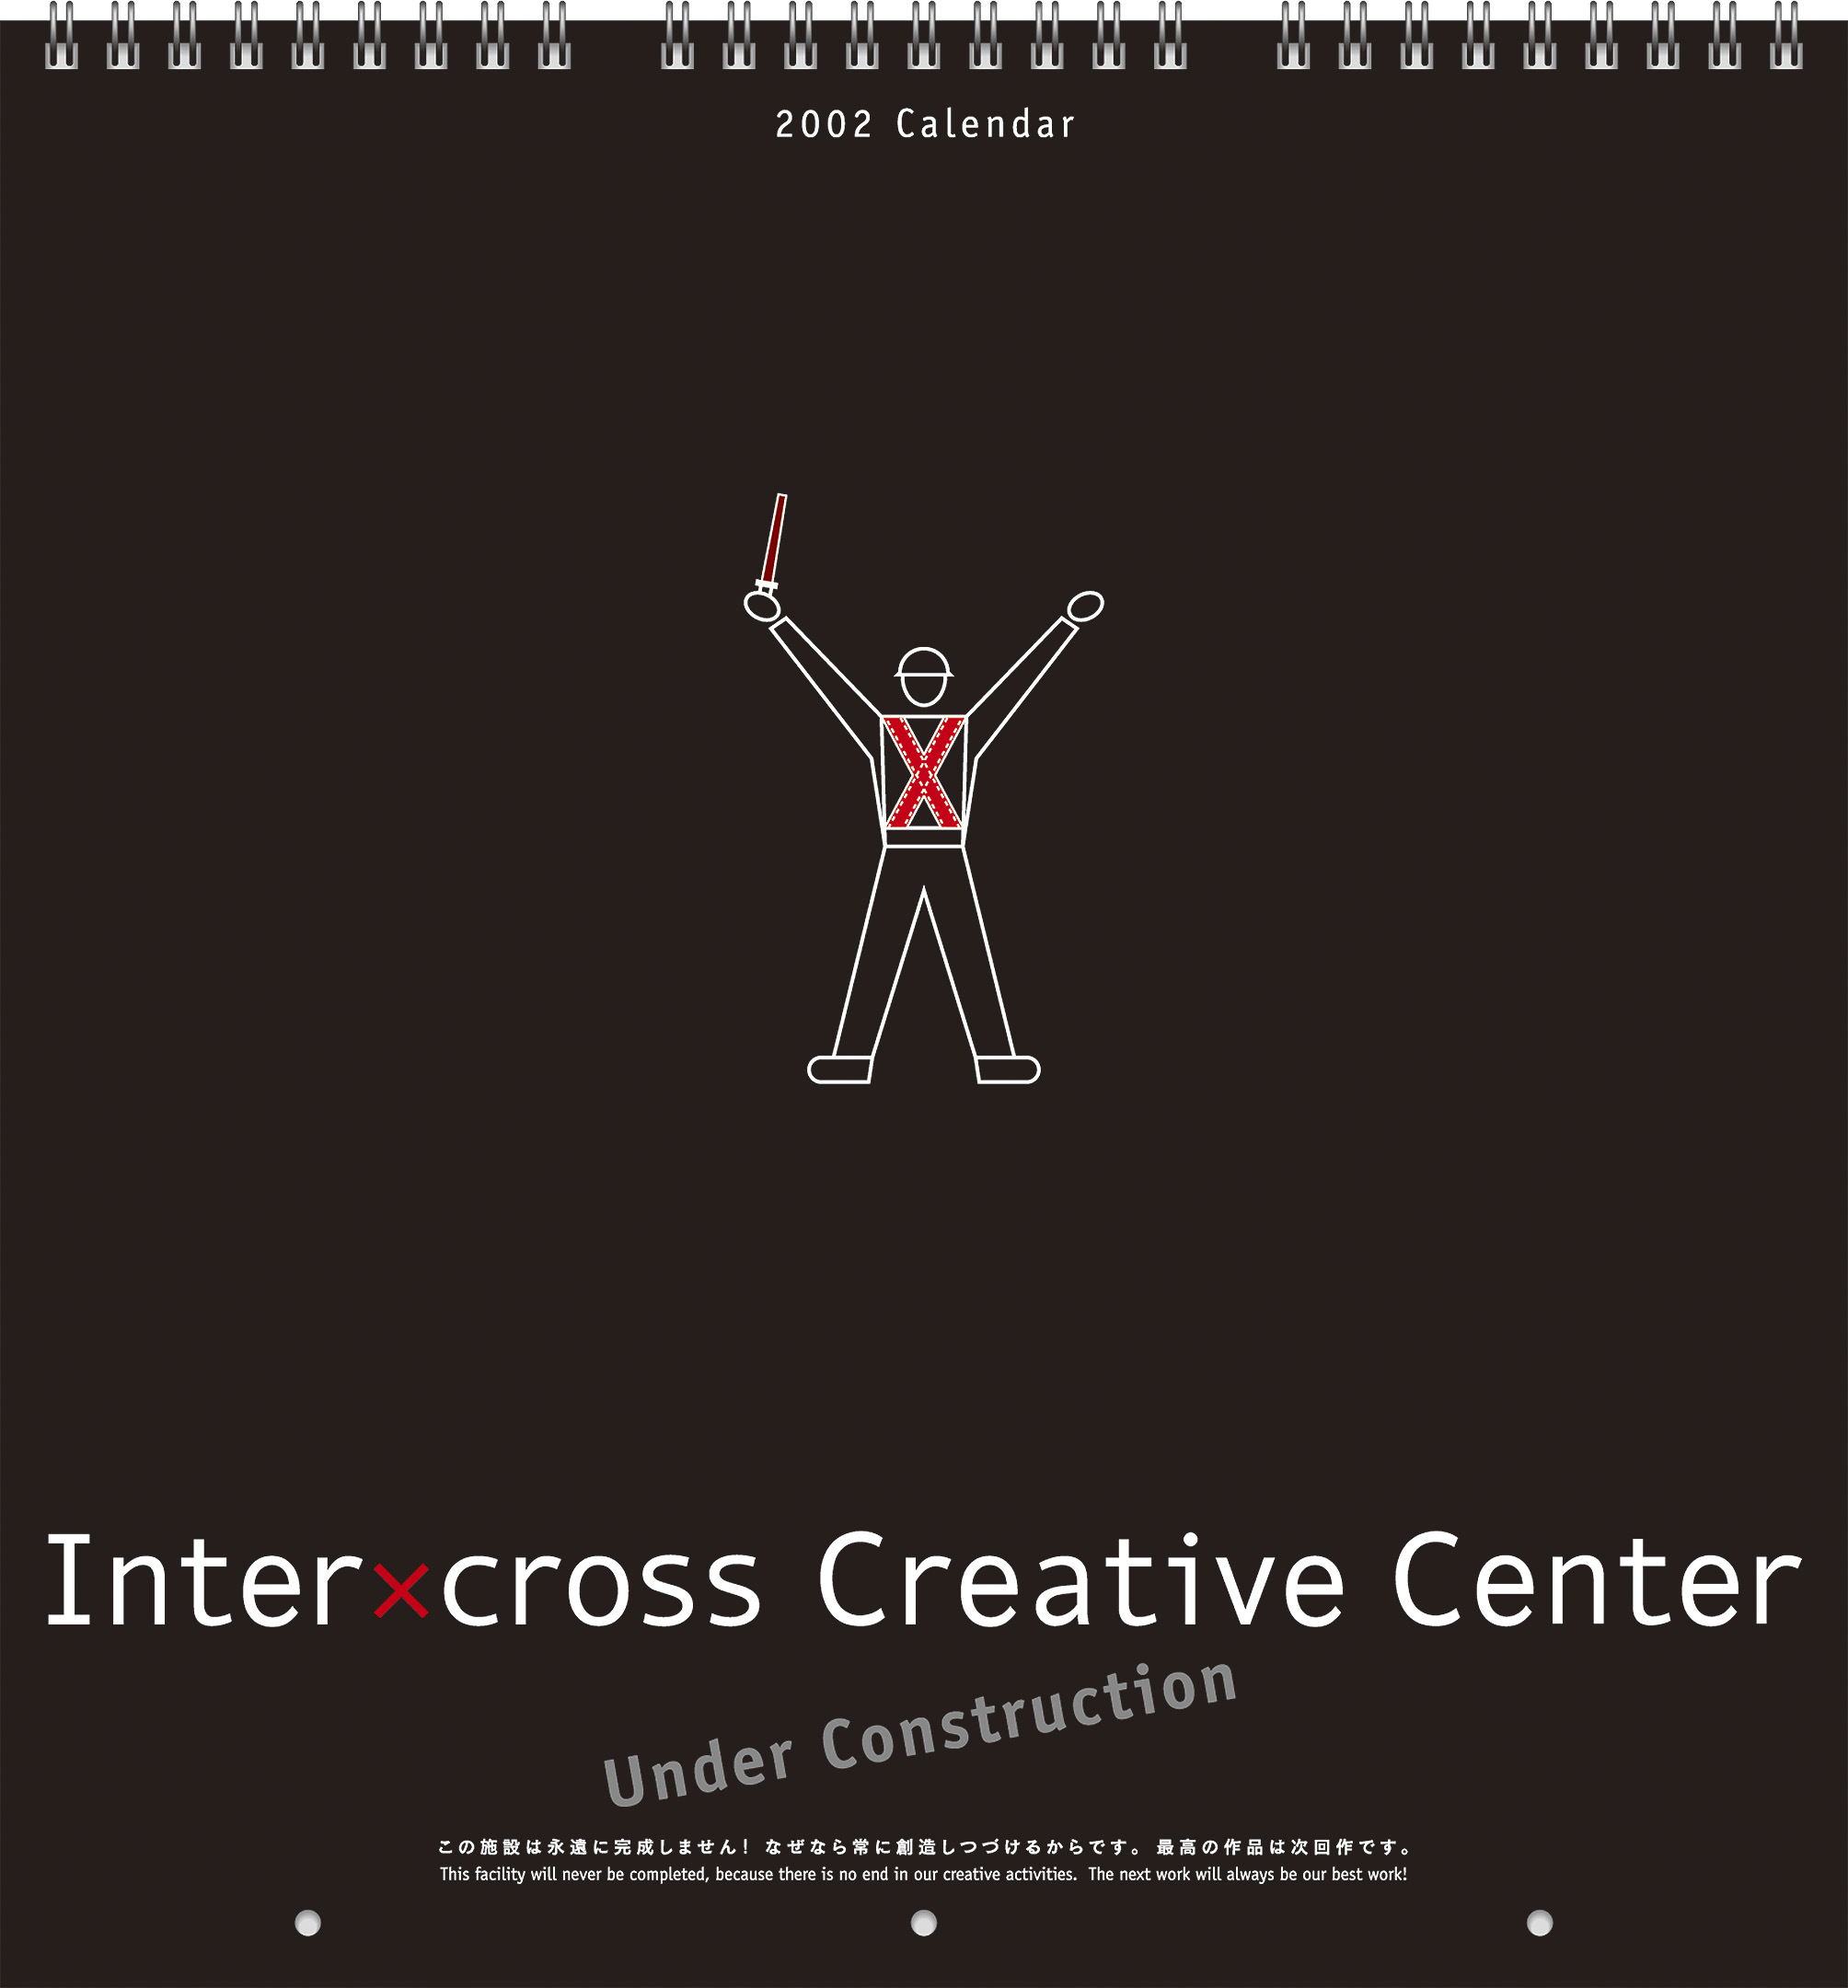 Inter-cross Creative Center